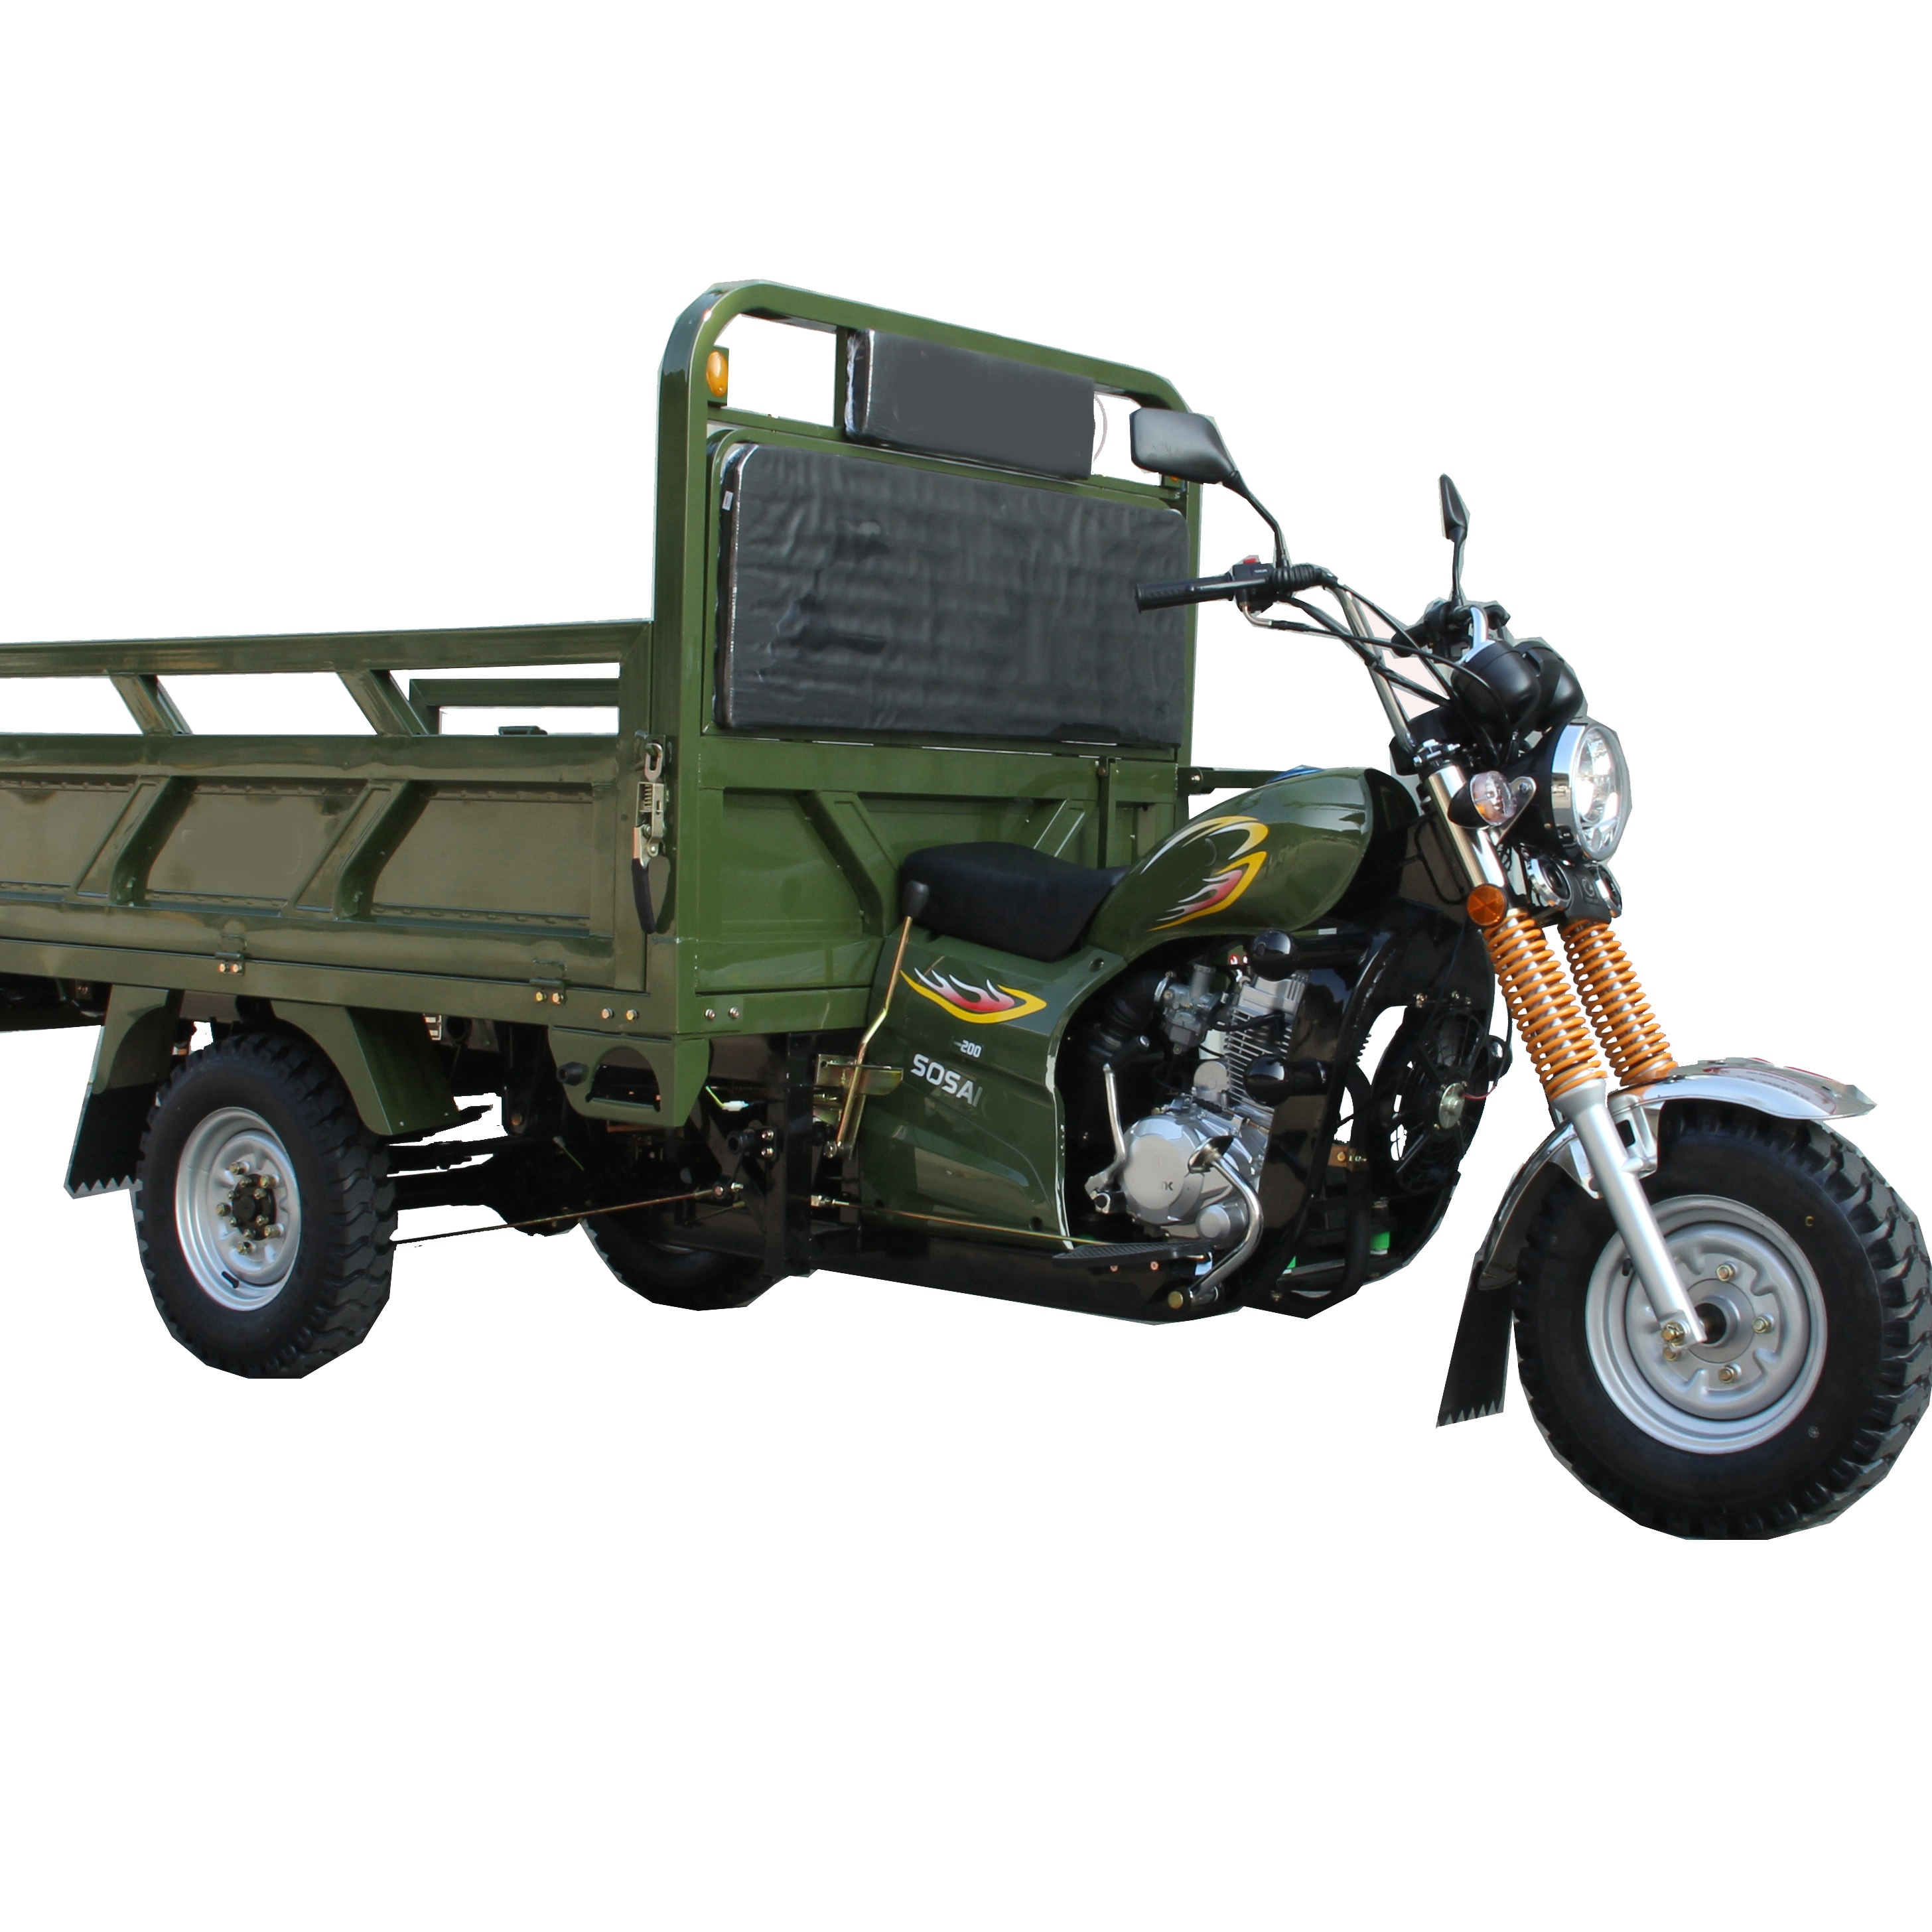 SP200-T Euro I Drum Brake Tricycle / Cheap China Good Quality Three Wheel Cargo Motorcycle Dirt bike Moto